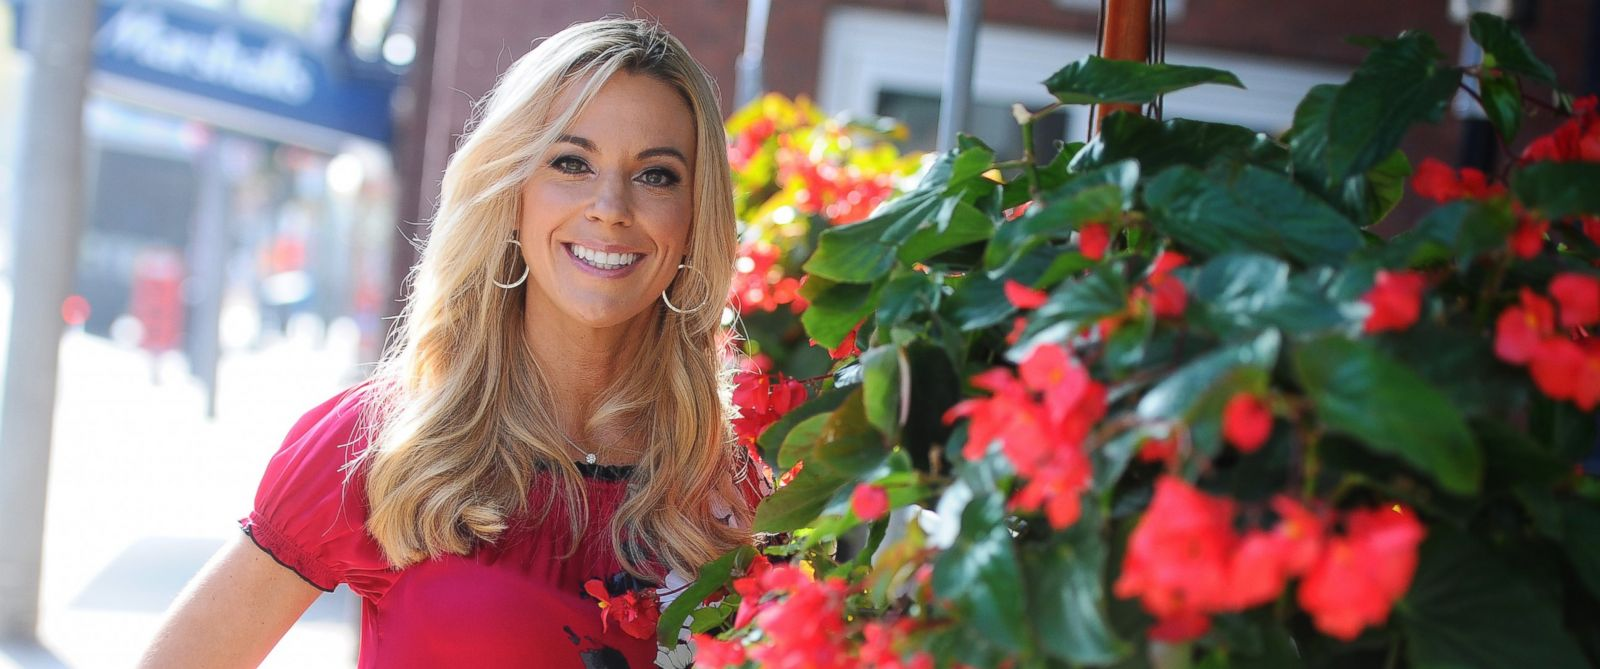 PHOTO: Kate Gosselin is pictured in Toronto, Canada on Oct. 1, 2013.